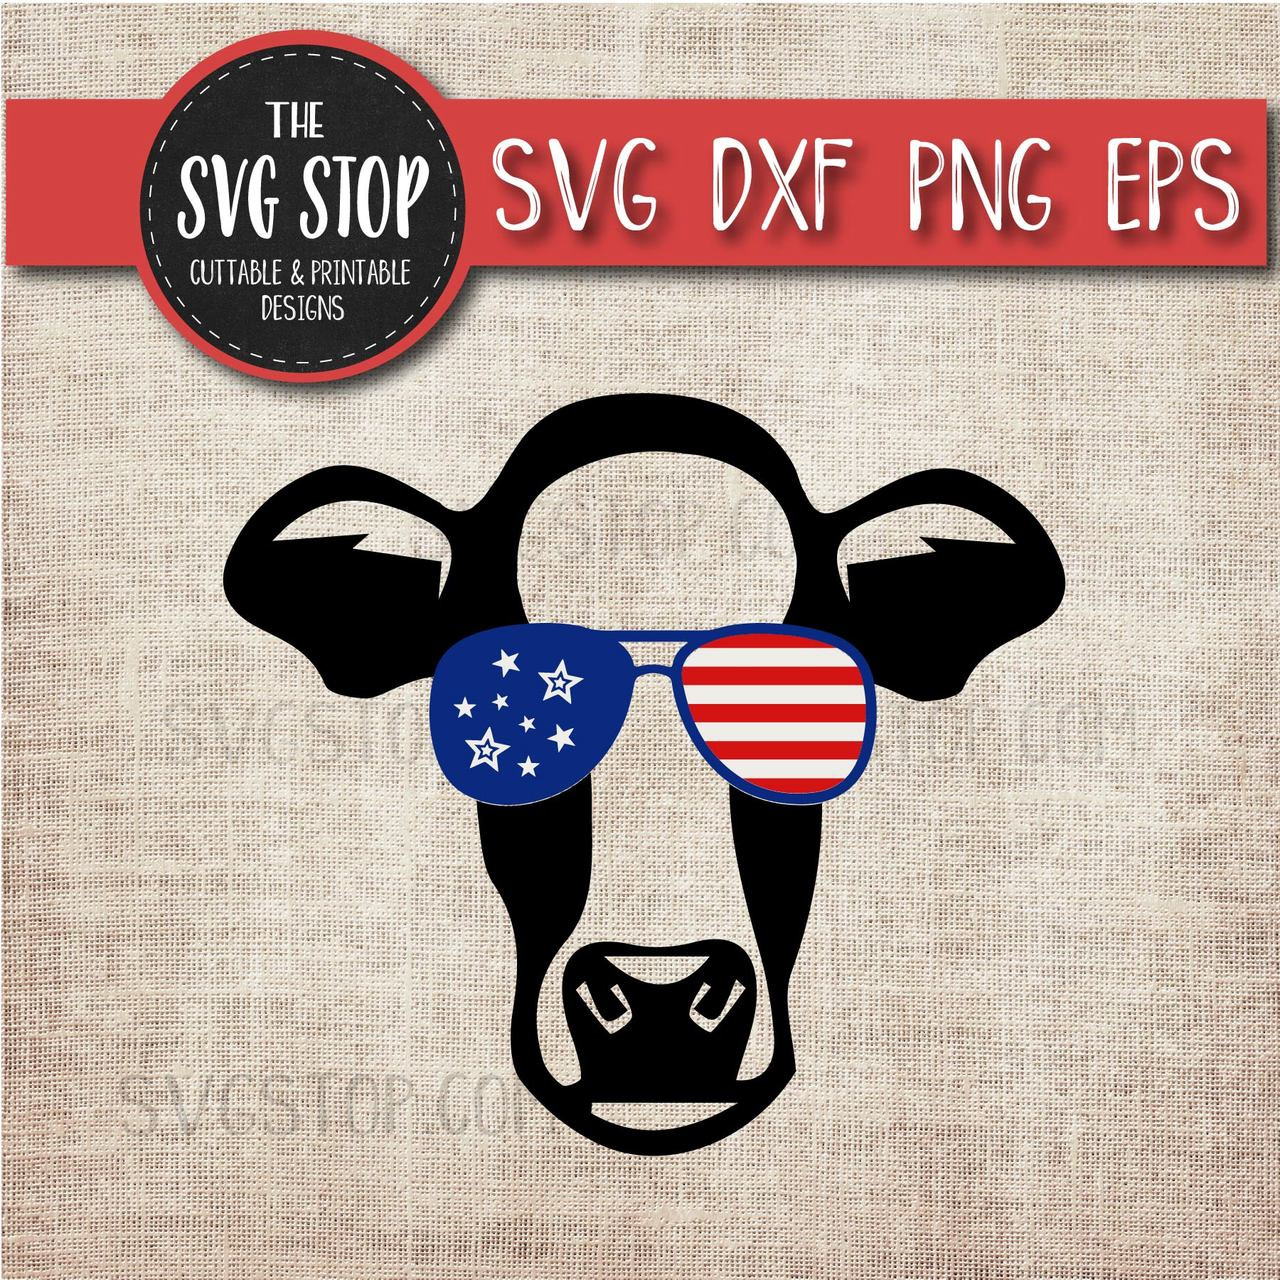 3172c2ae06f Cow with glasses flag glasses america patriotic svg clipart cut file  sublimation design